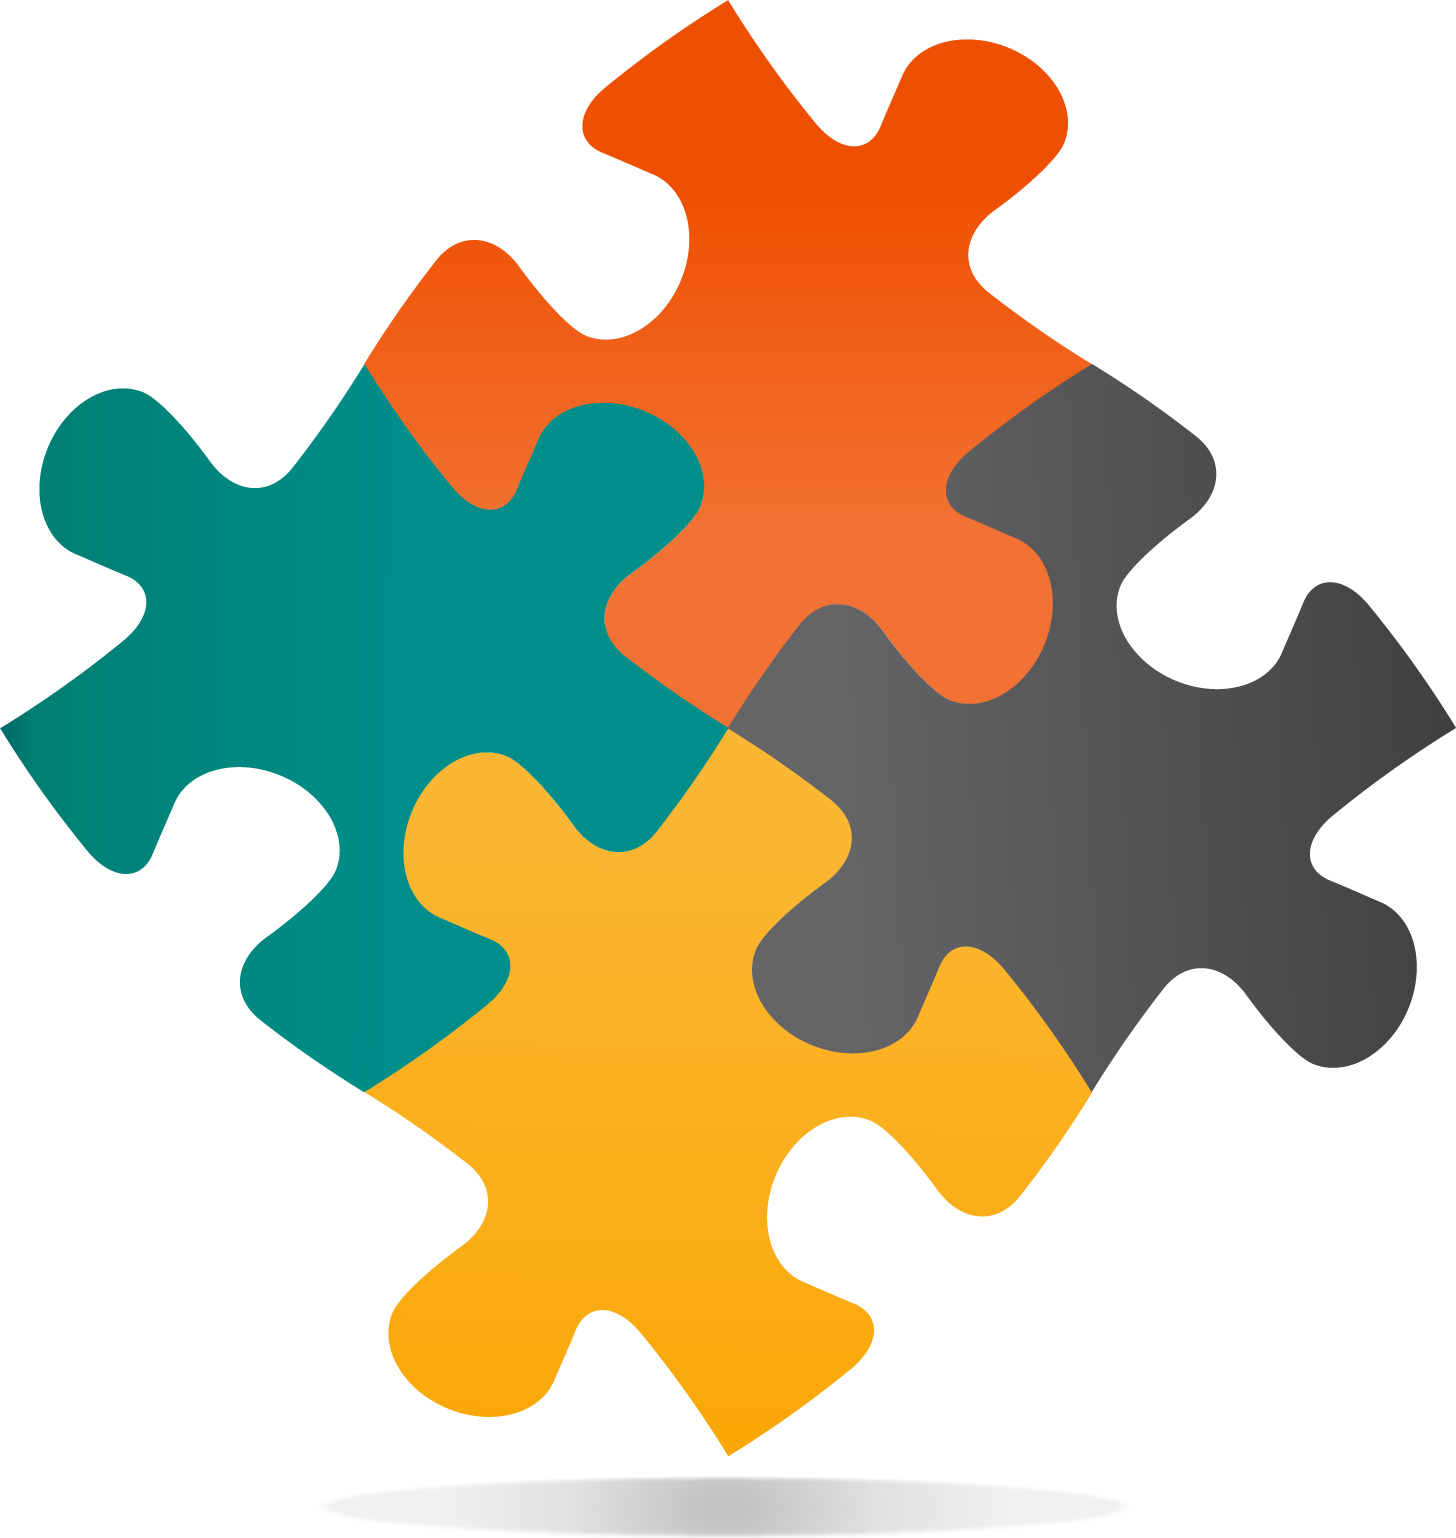 Jigsaw png transparent free. Puzzle clipart orange